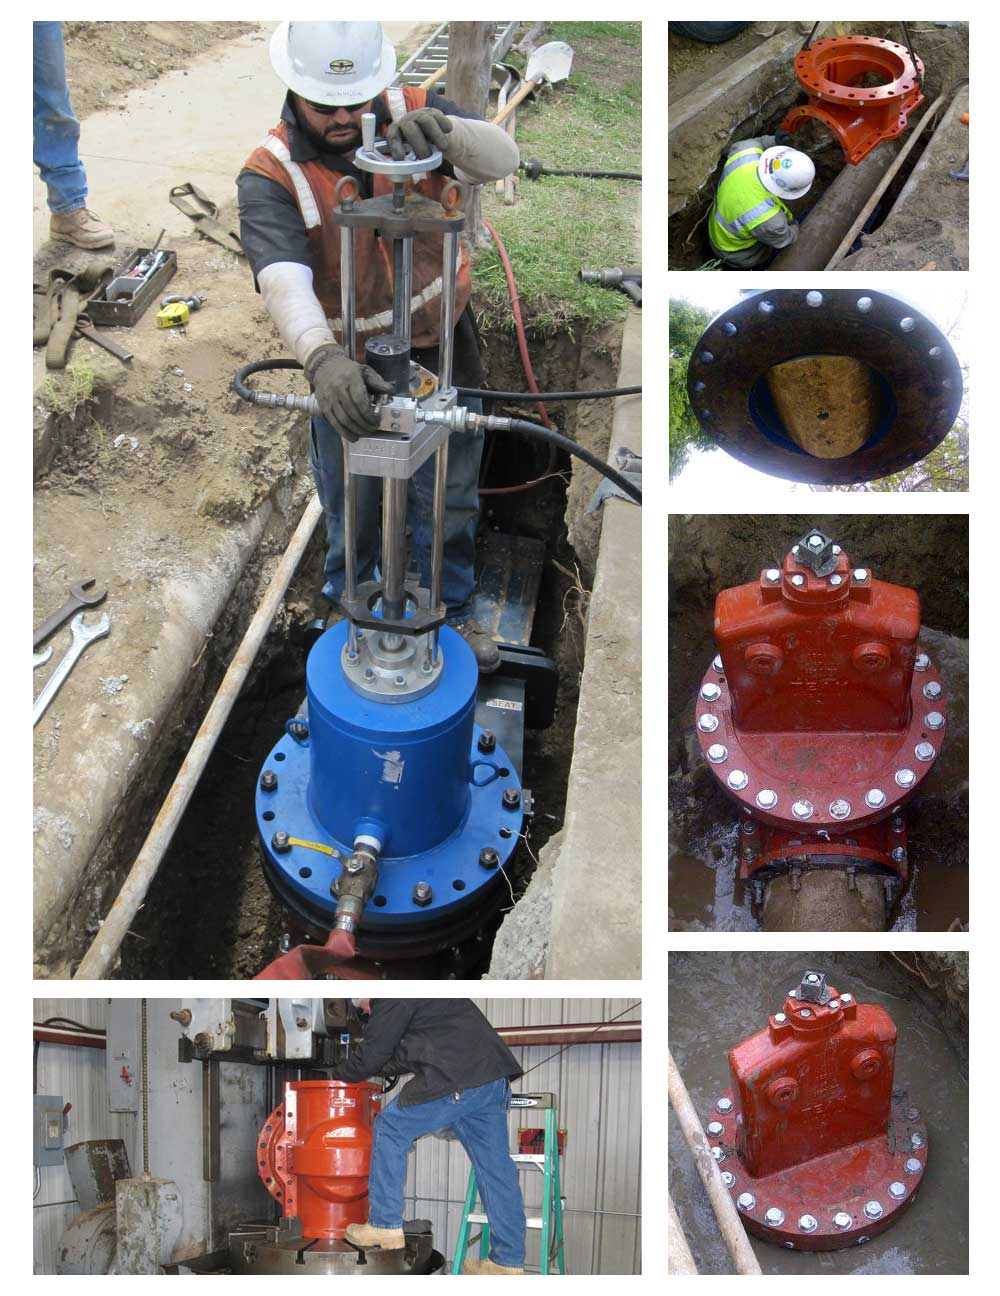 California 12inch Team Insert Valve Installation In Tight Location